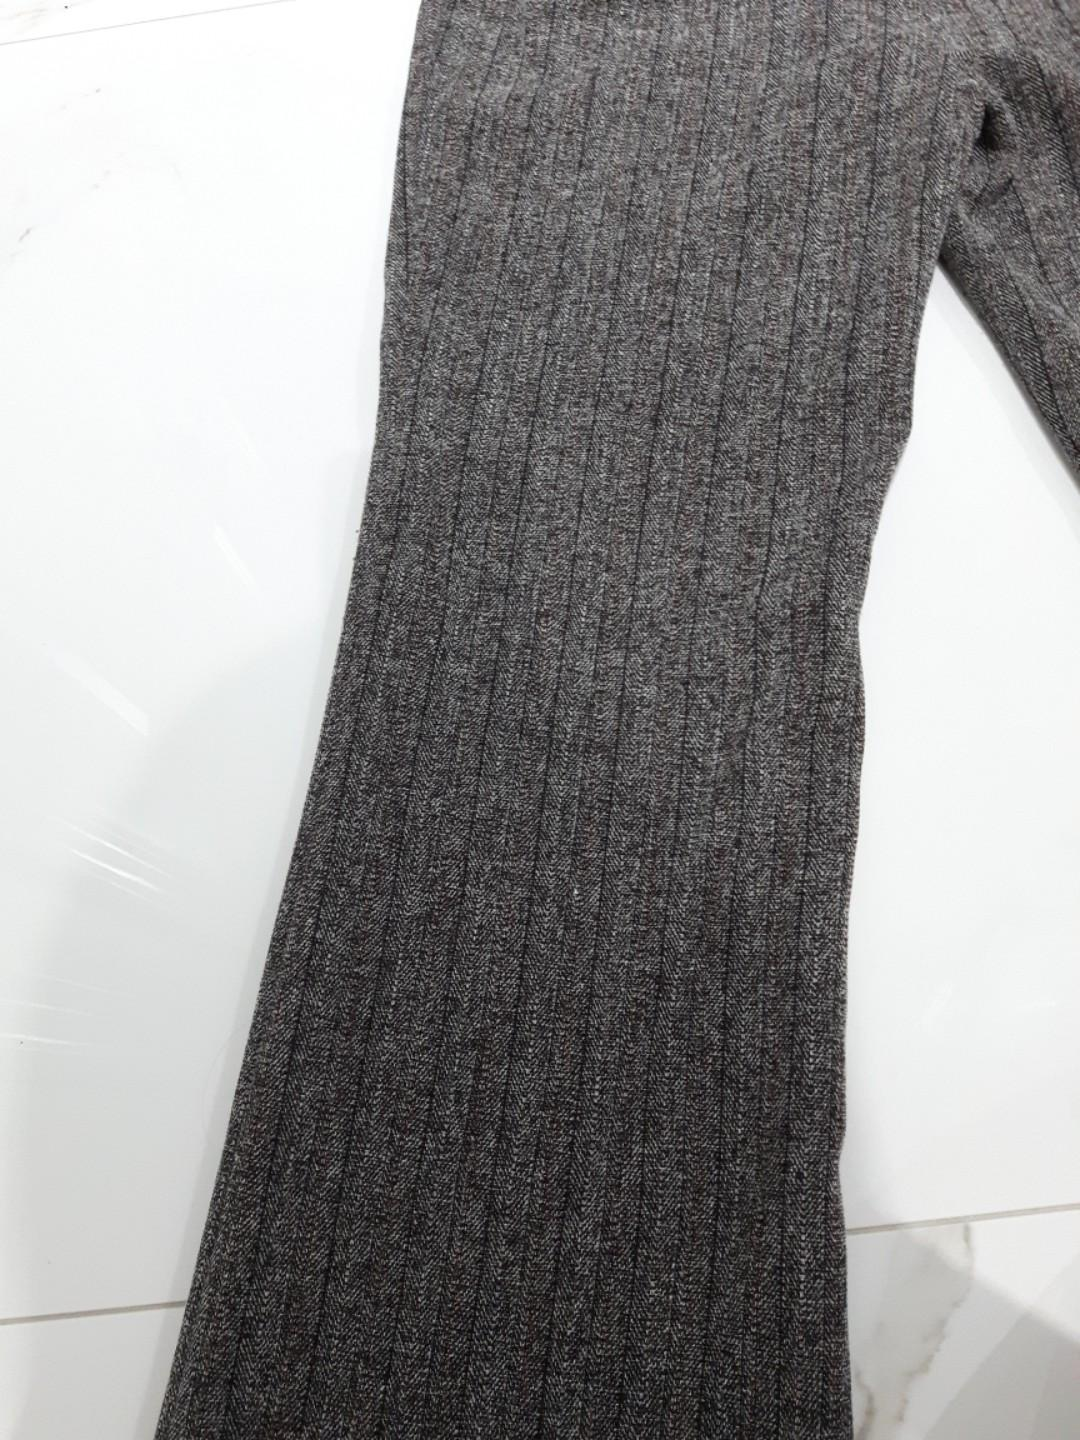 Low Rise Wide Leg Size 3 (feels like size 5) (Great for workplace)